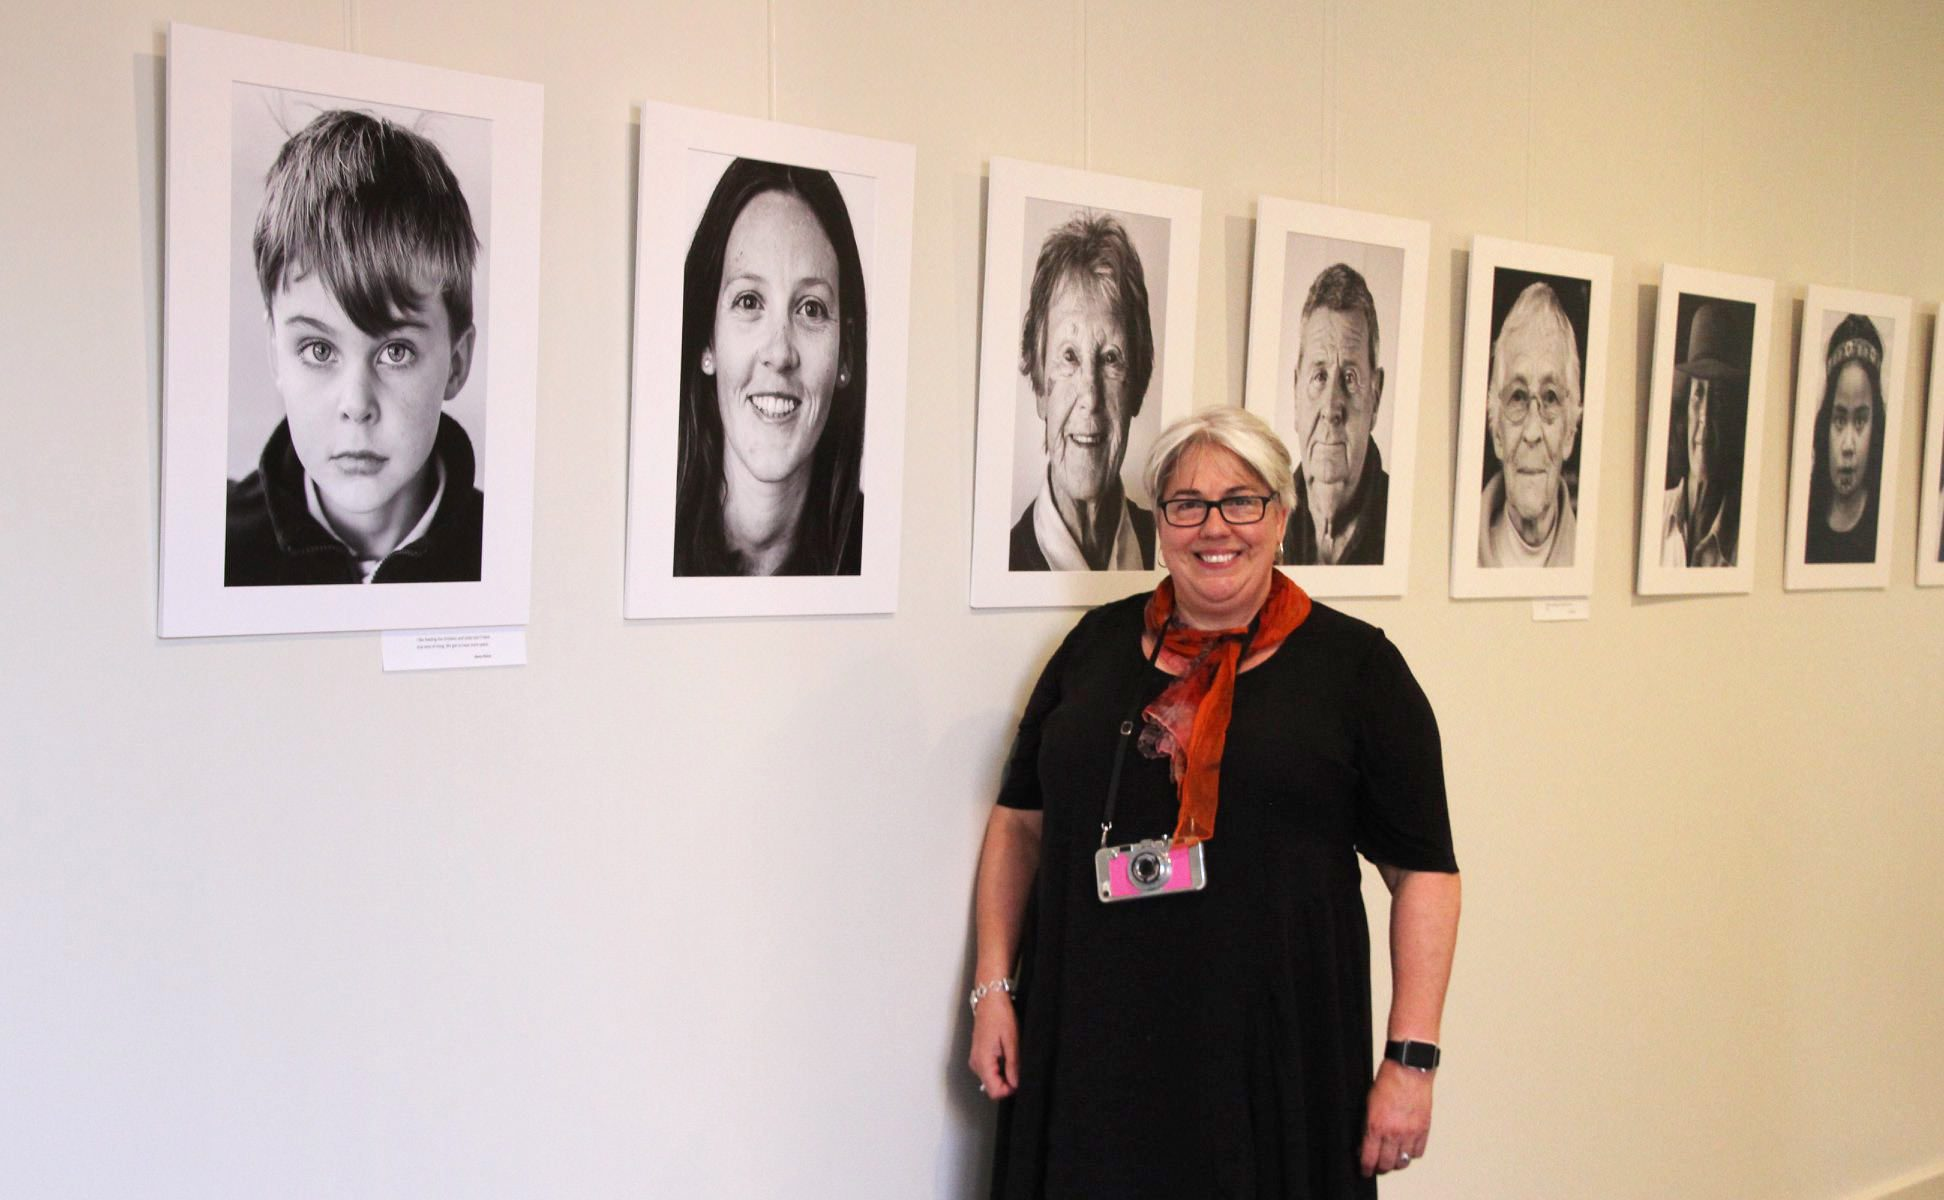 Caro Telfer standing in front of black and white portraits on a wall